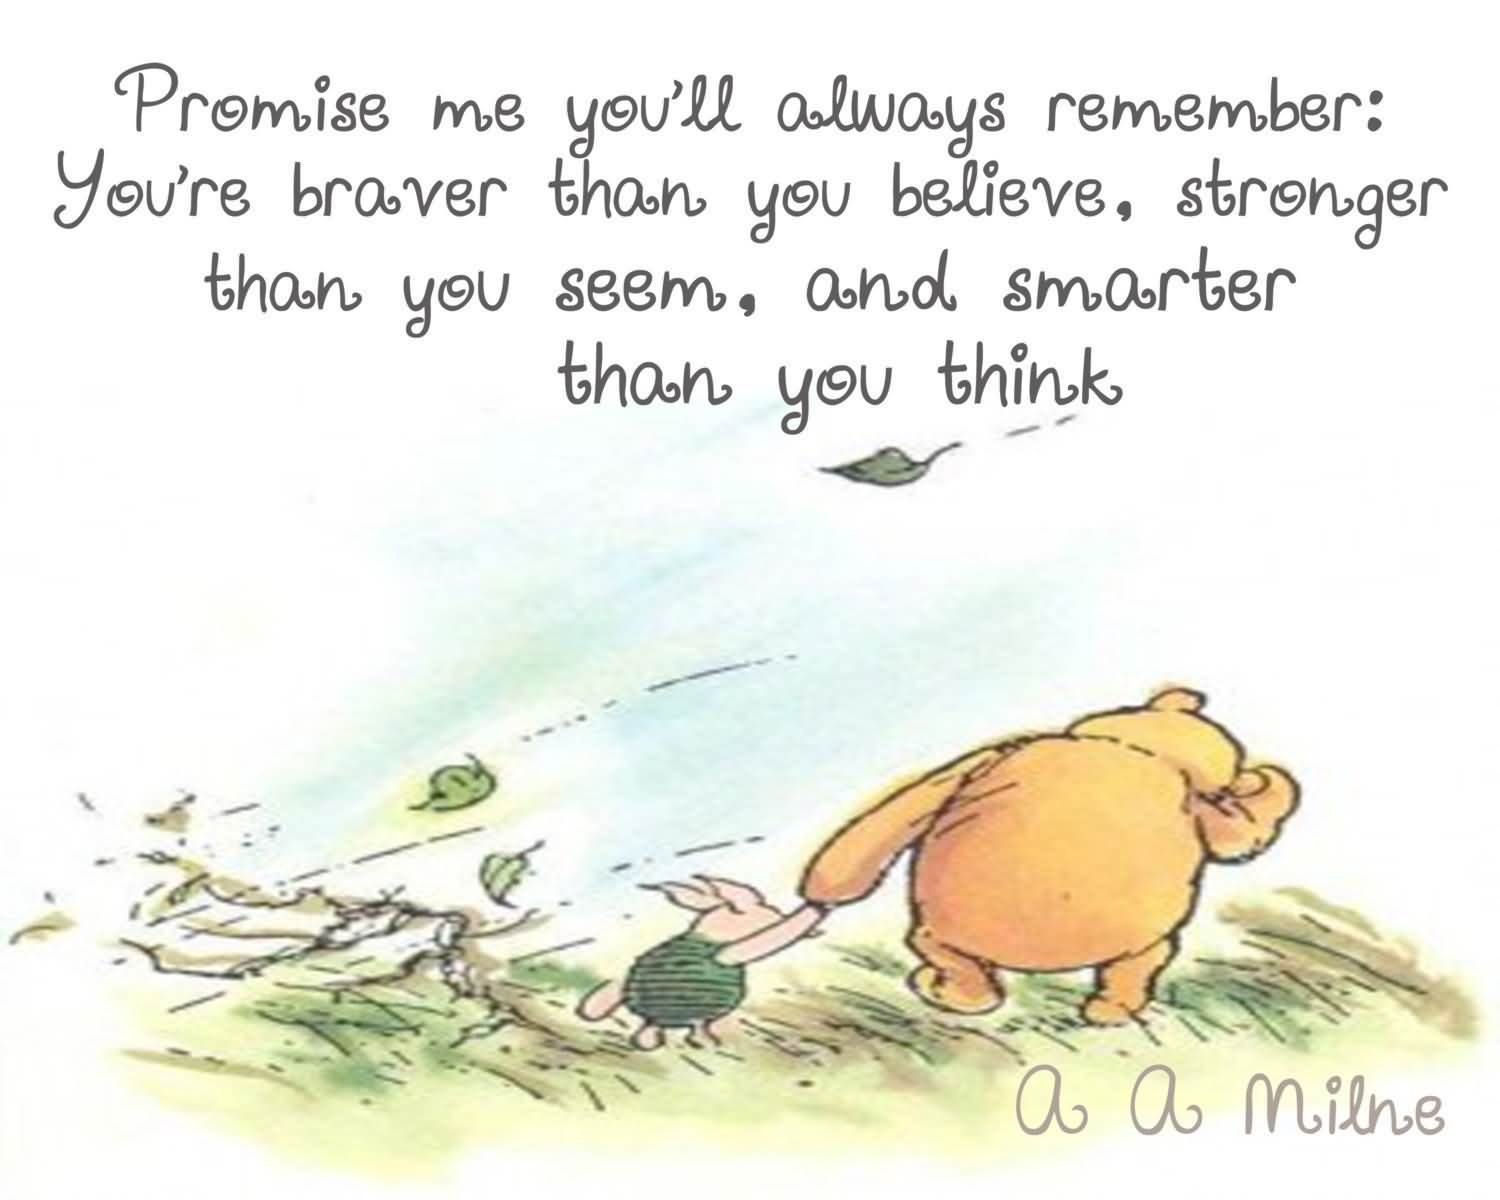 Winnie The Pooh Quotes Meme Image 17